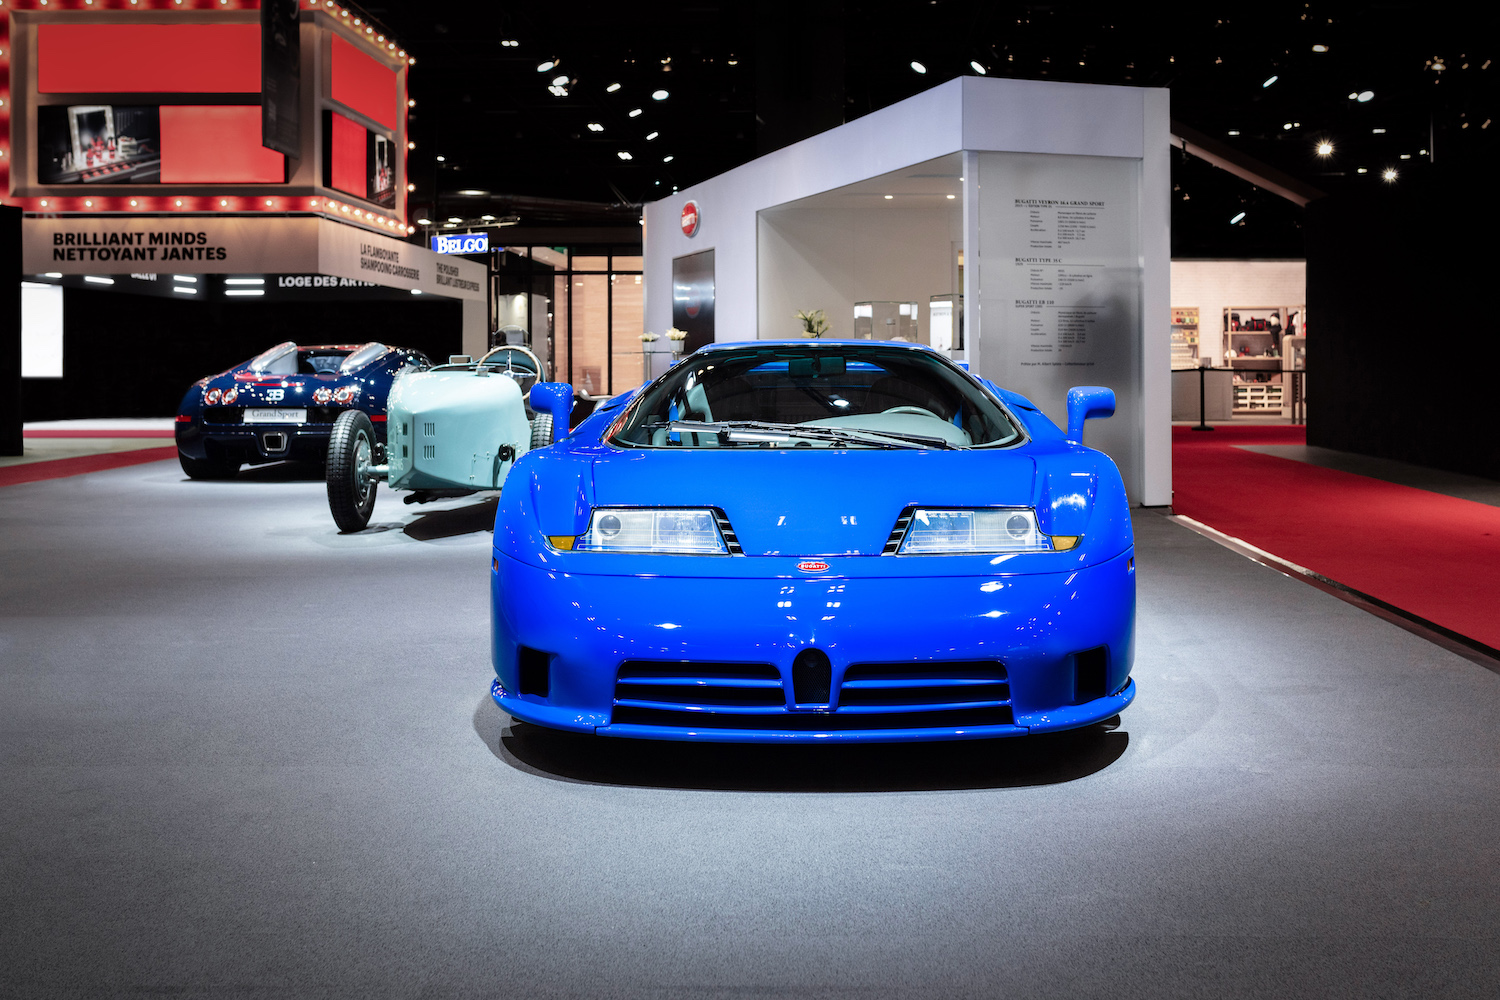 vintage bugatti front on display